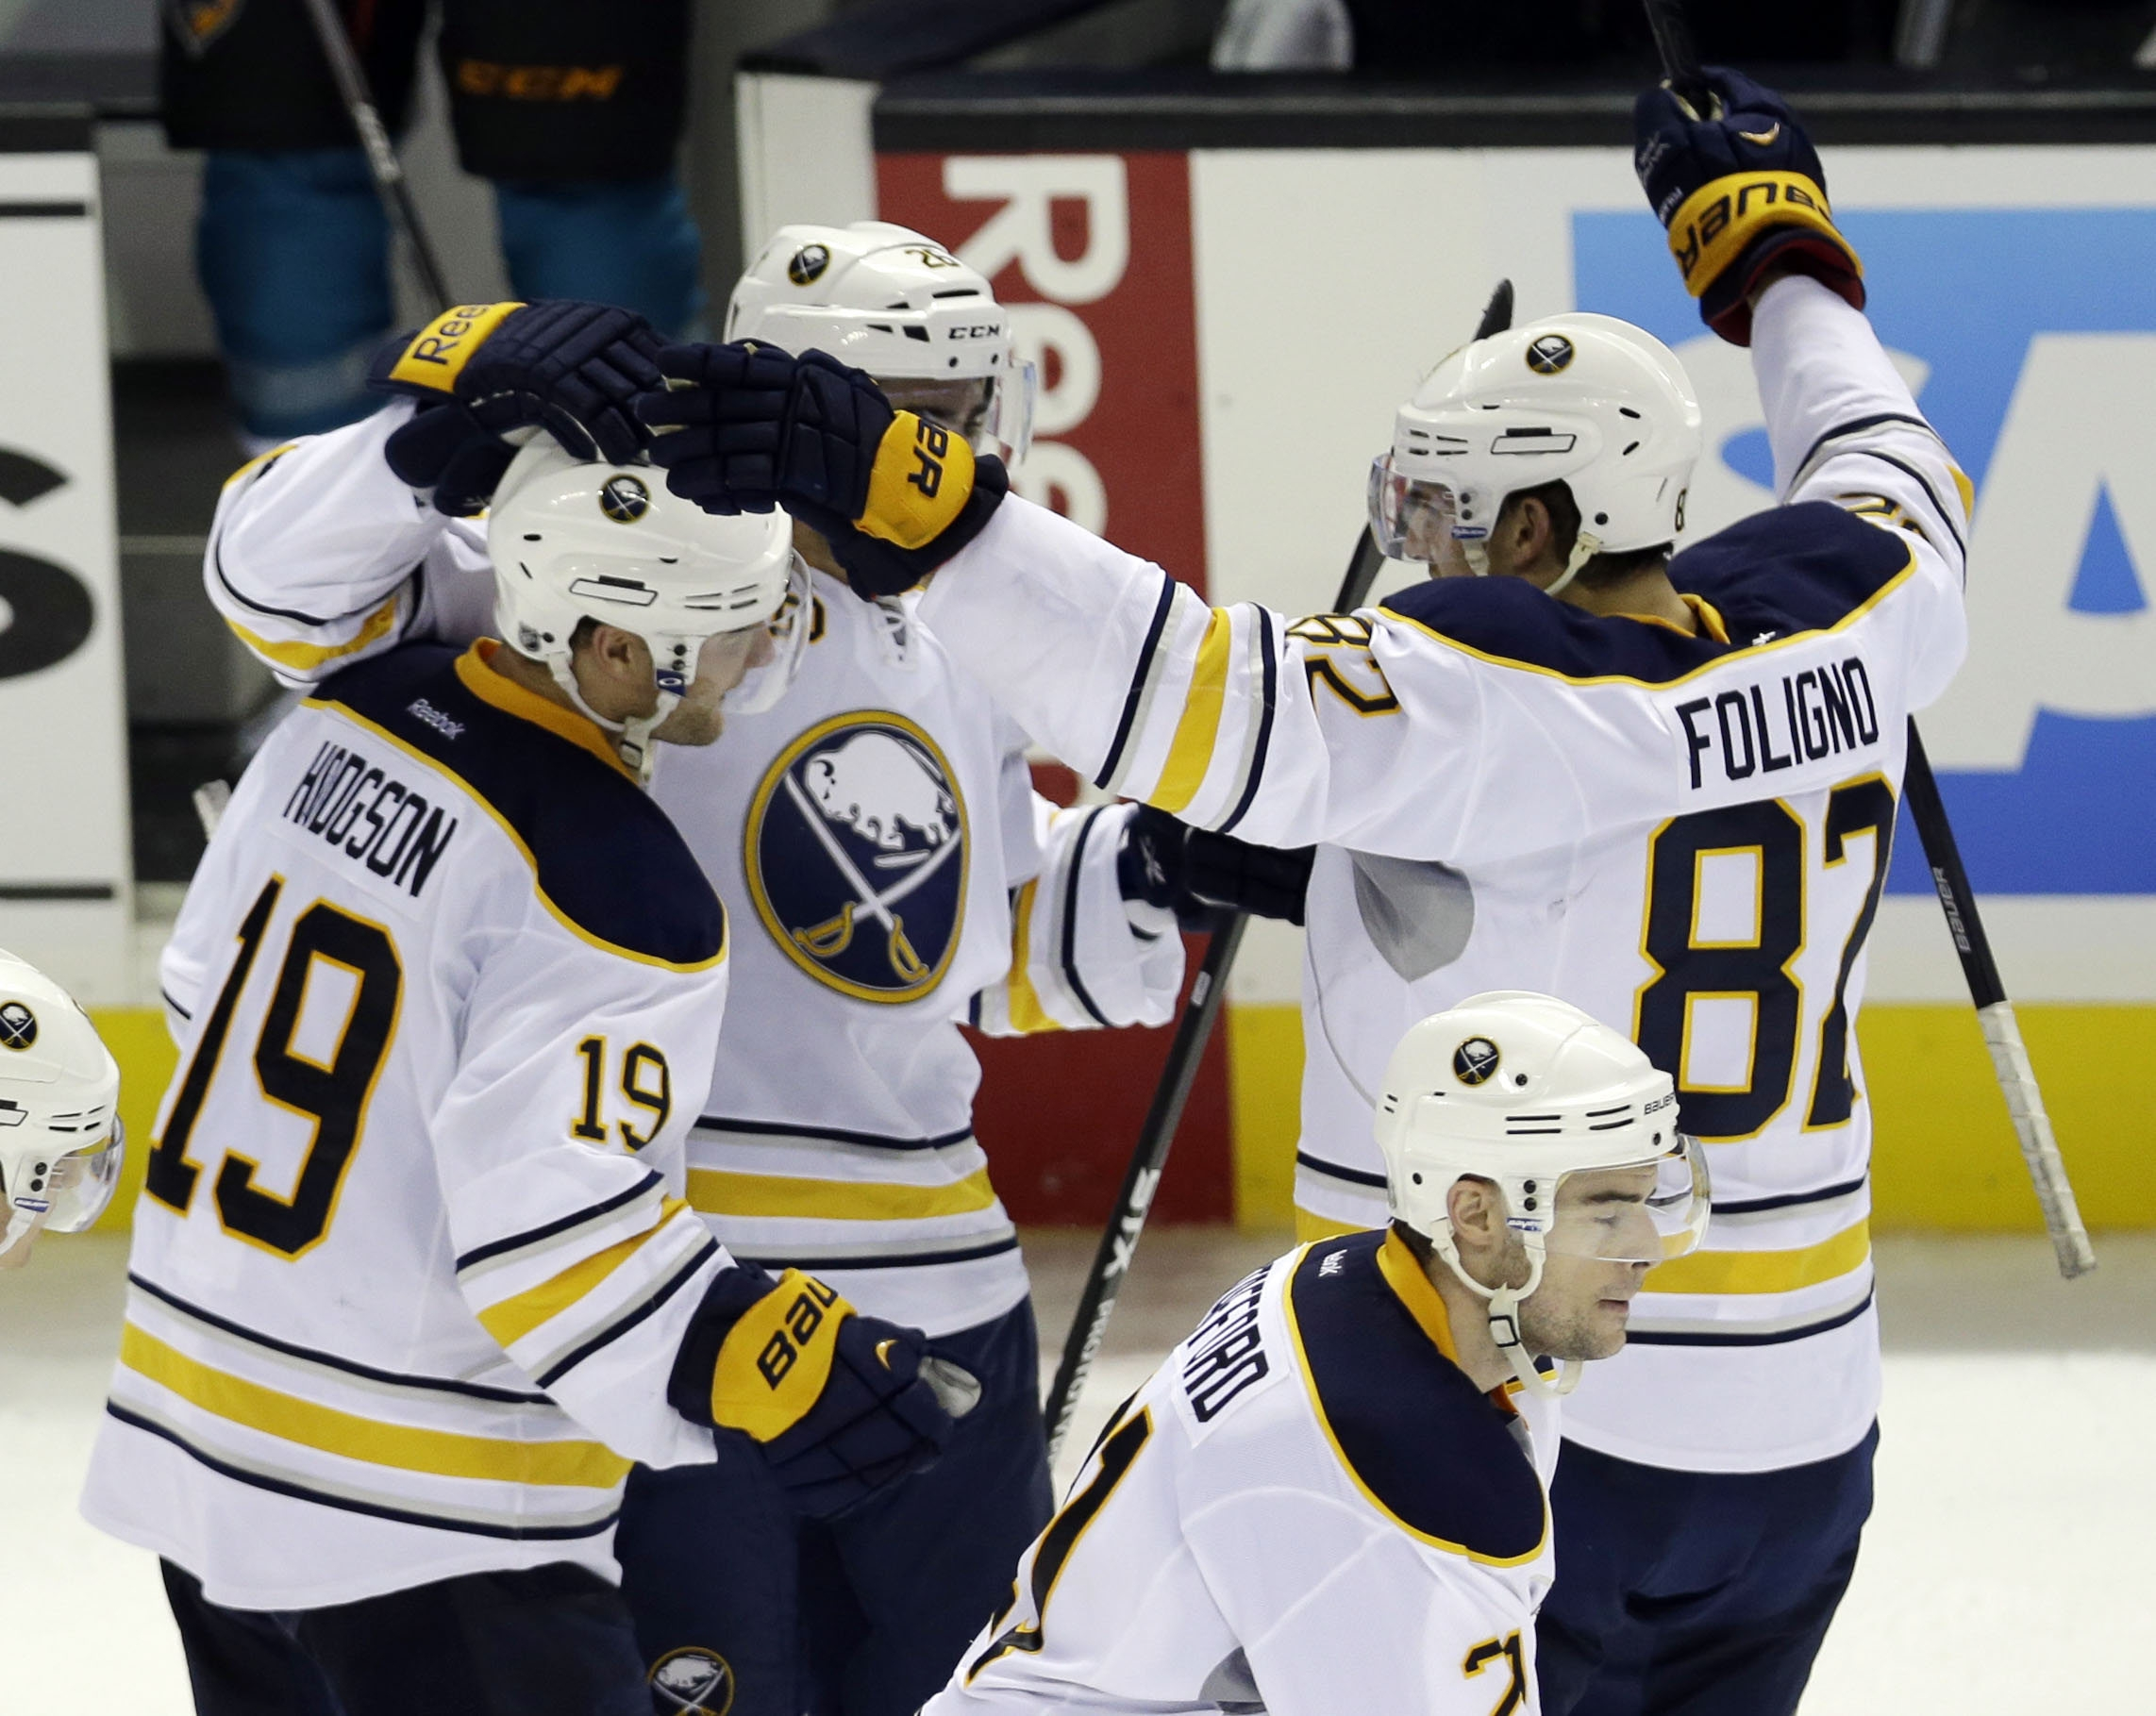 The Buffalo Sabres' Cody Hodgson (19) celebrates his shootout-winning goal late Tuesday night in San Jose as the Sabres beat the Sharks, 5-4, to start a three-game West coast road trip on a triumphant note.  (AP Photo/Marcio Jose Sanchez)